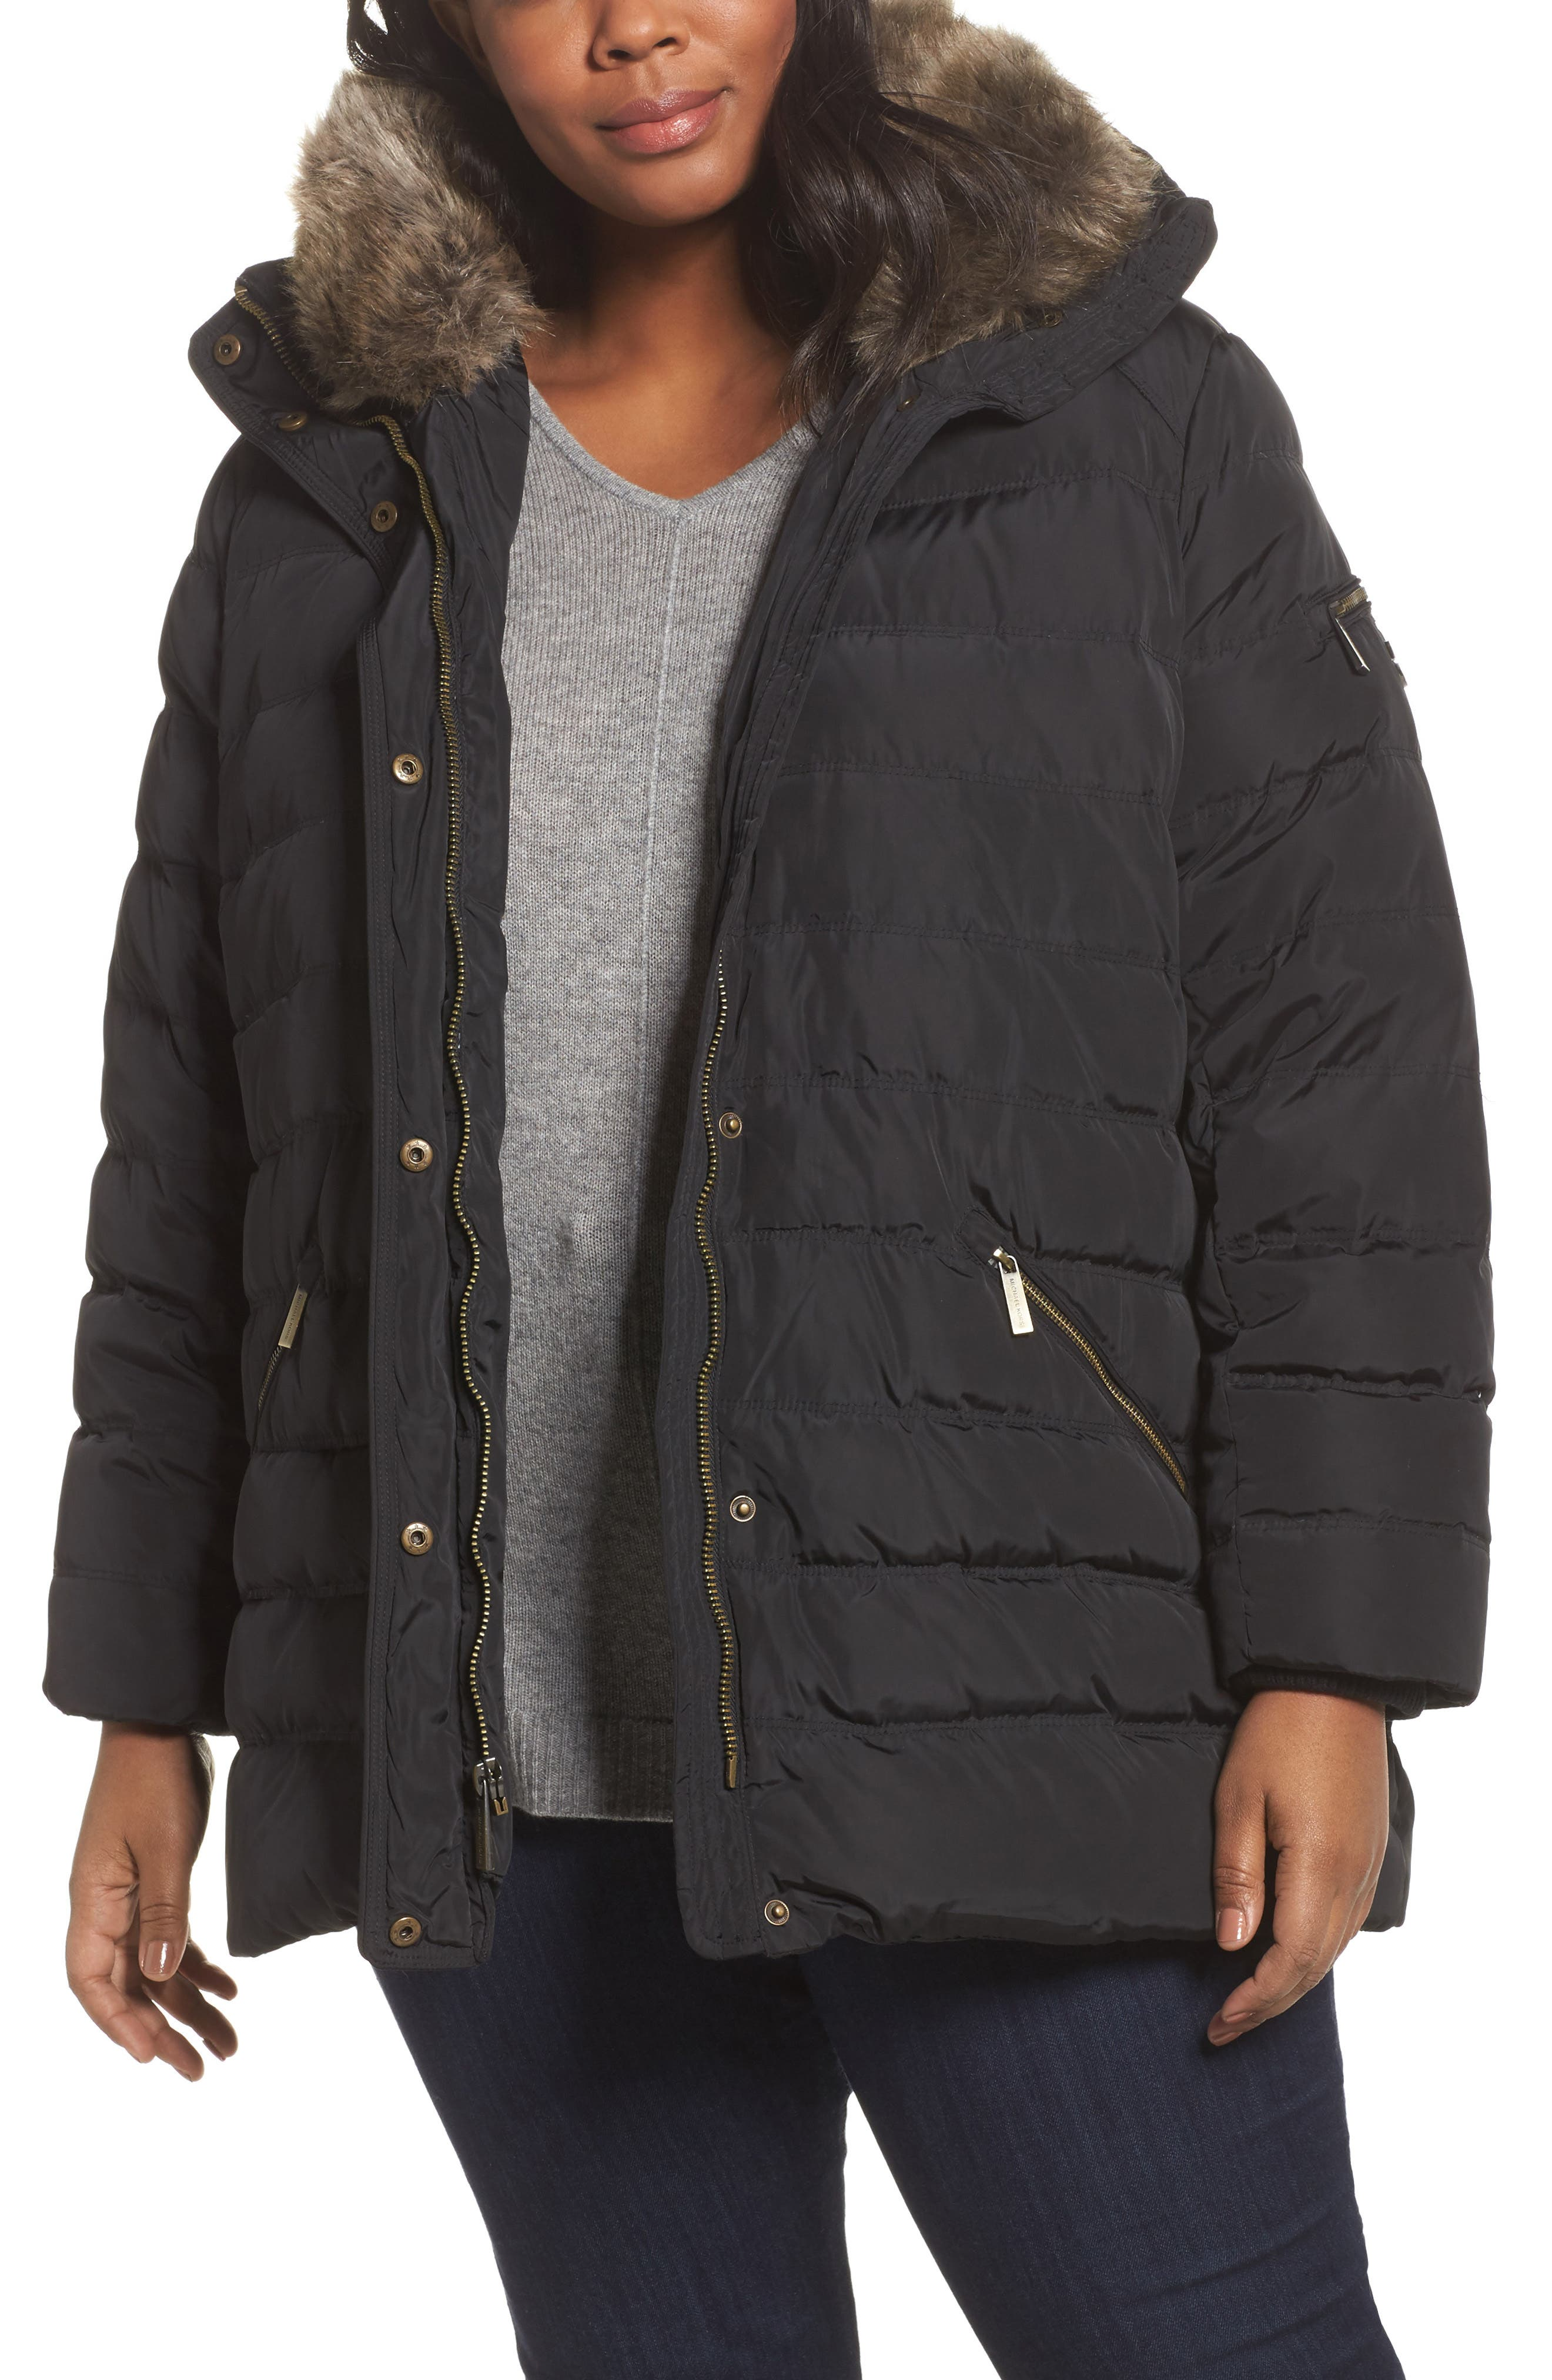 Alternate Image 1 Selected - MICHAEL Michael Kors Down & Feather Hooded Coat with Faux Fur Trim (Plus Size)